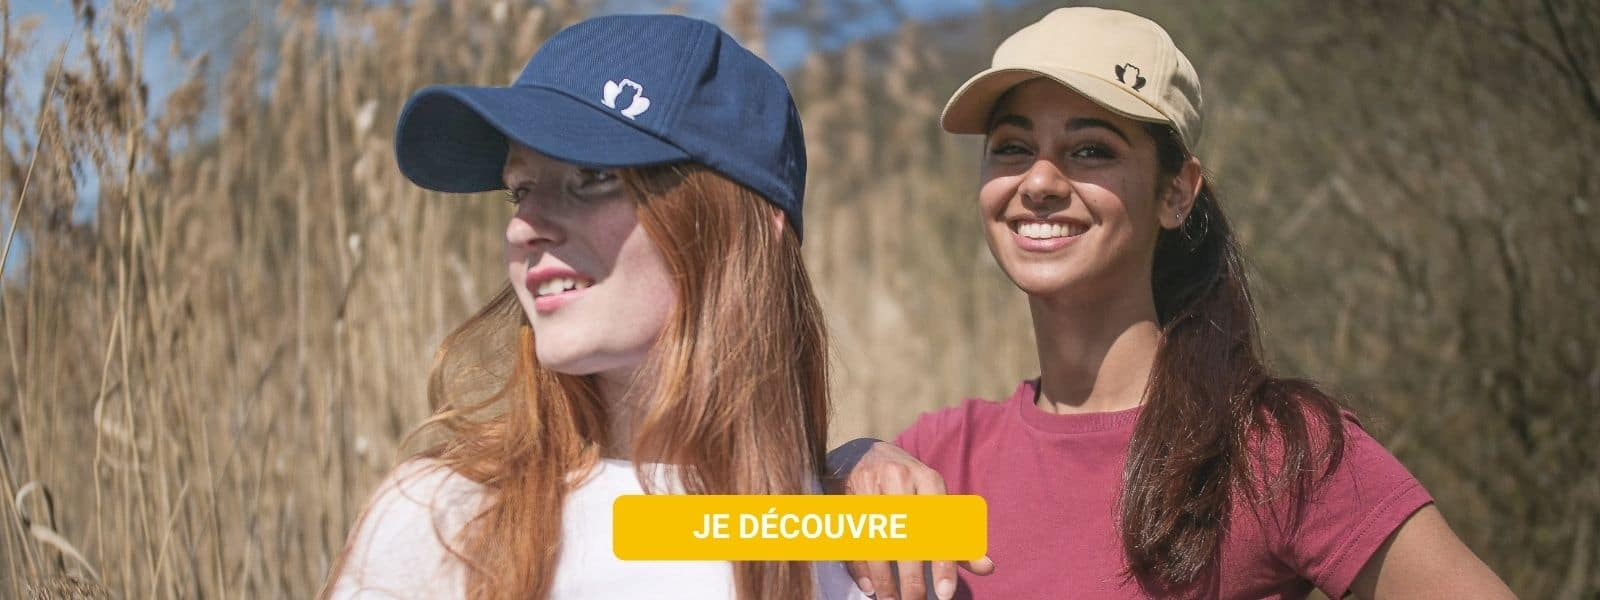 casquette-made-in-france-femme-tranquille-emile